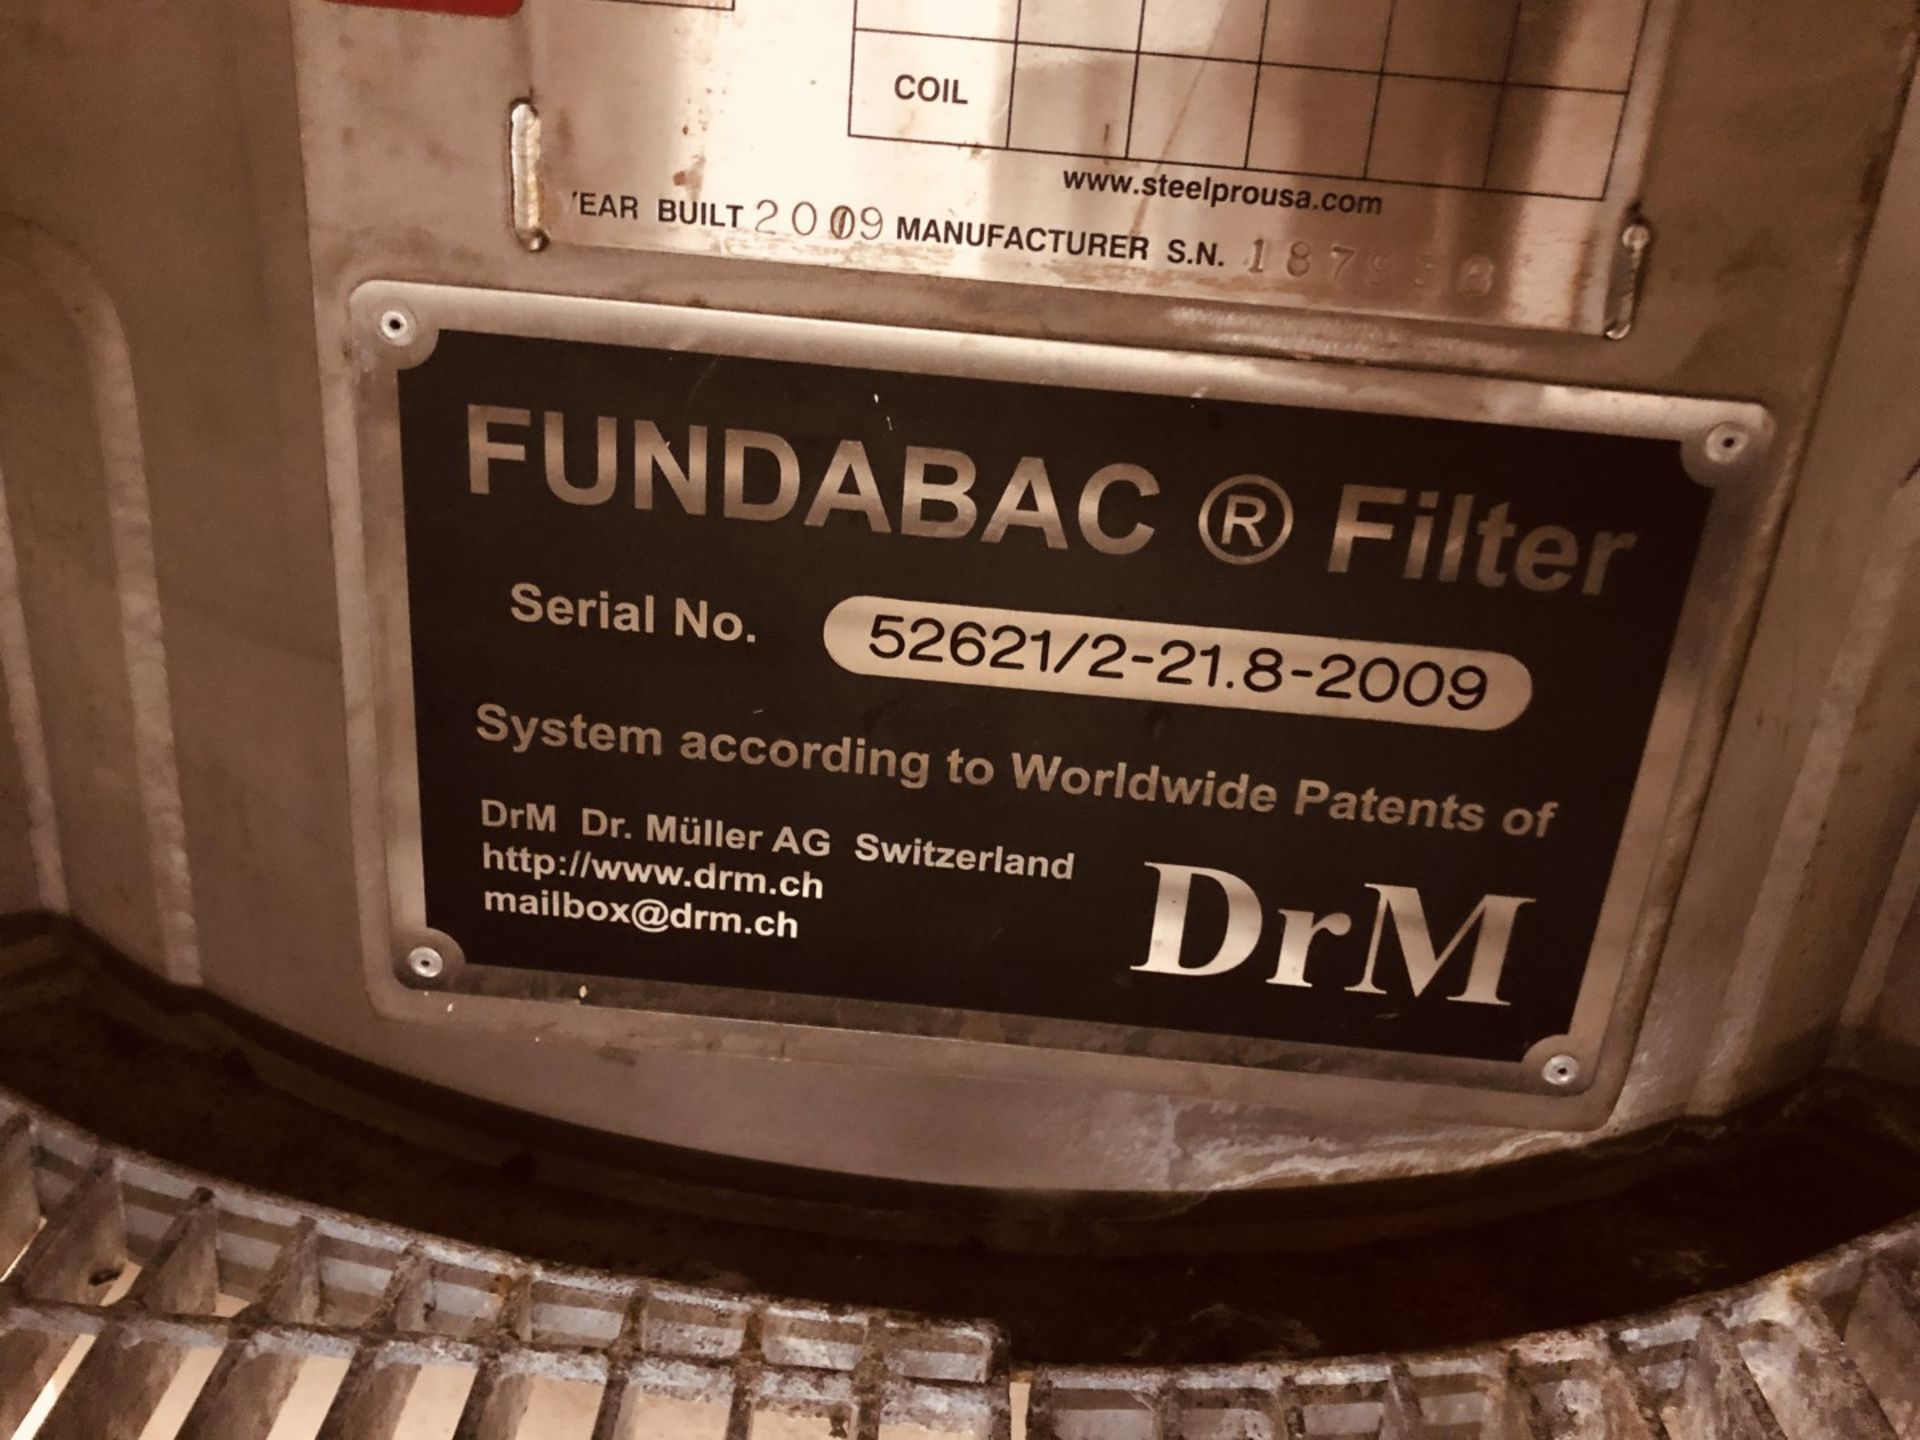 Dr. M Model R-021.8-42-2000/T130Z 21.8 Sq Meter(234 sq ft) Fundabac Candle Filter - Image 5 of 5